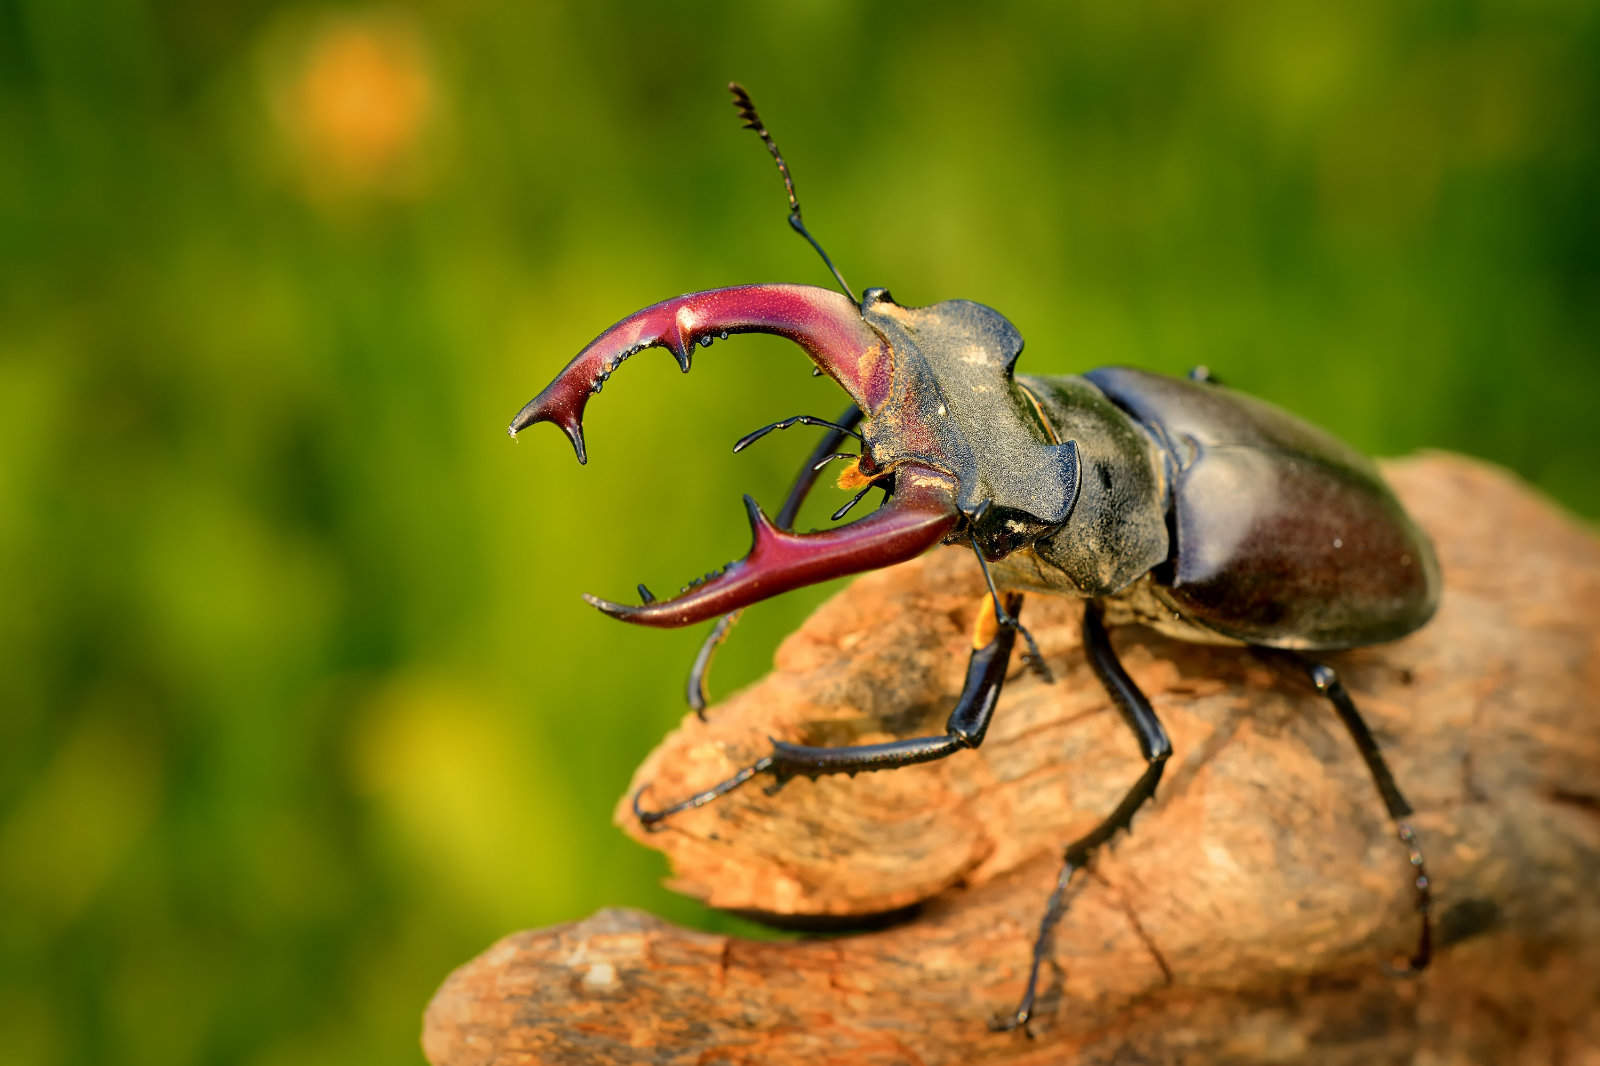 Stag Beetle (Lucanus cervus) on the tree branch. Big horned beetle perched on the branch